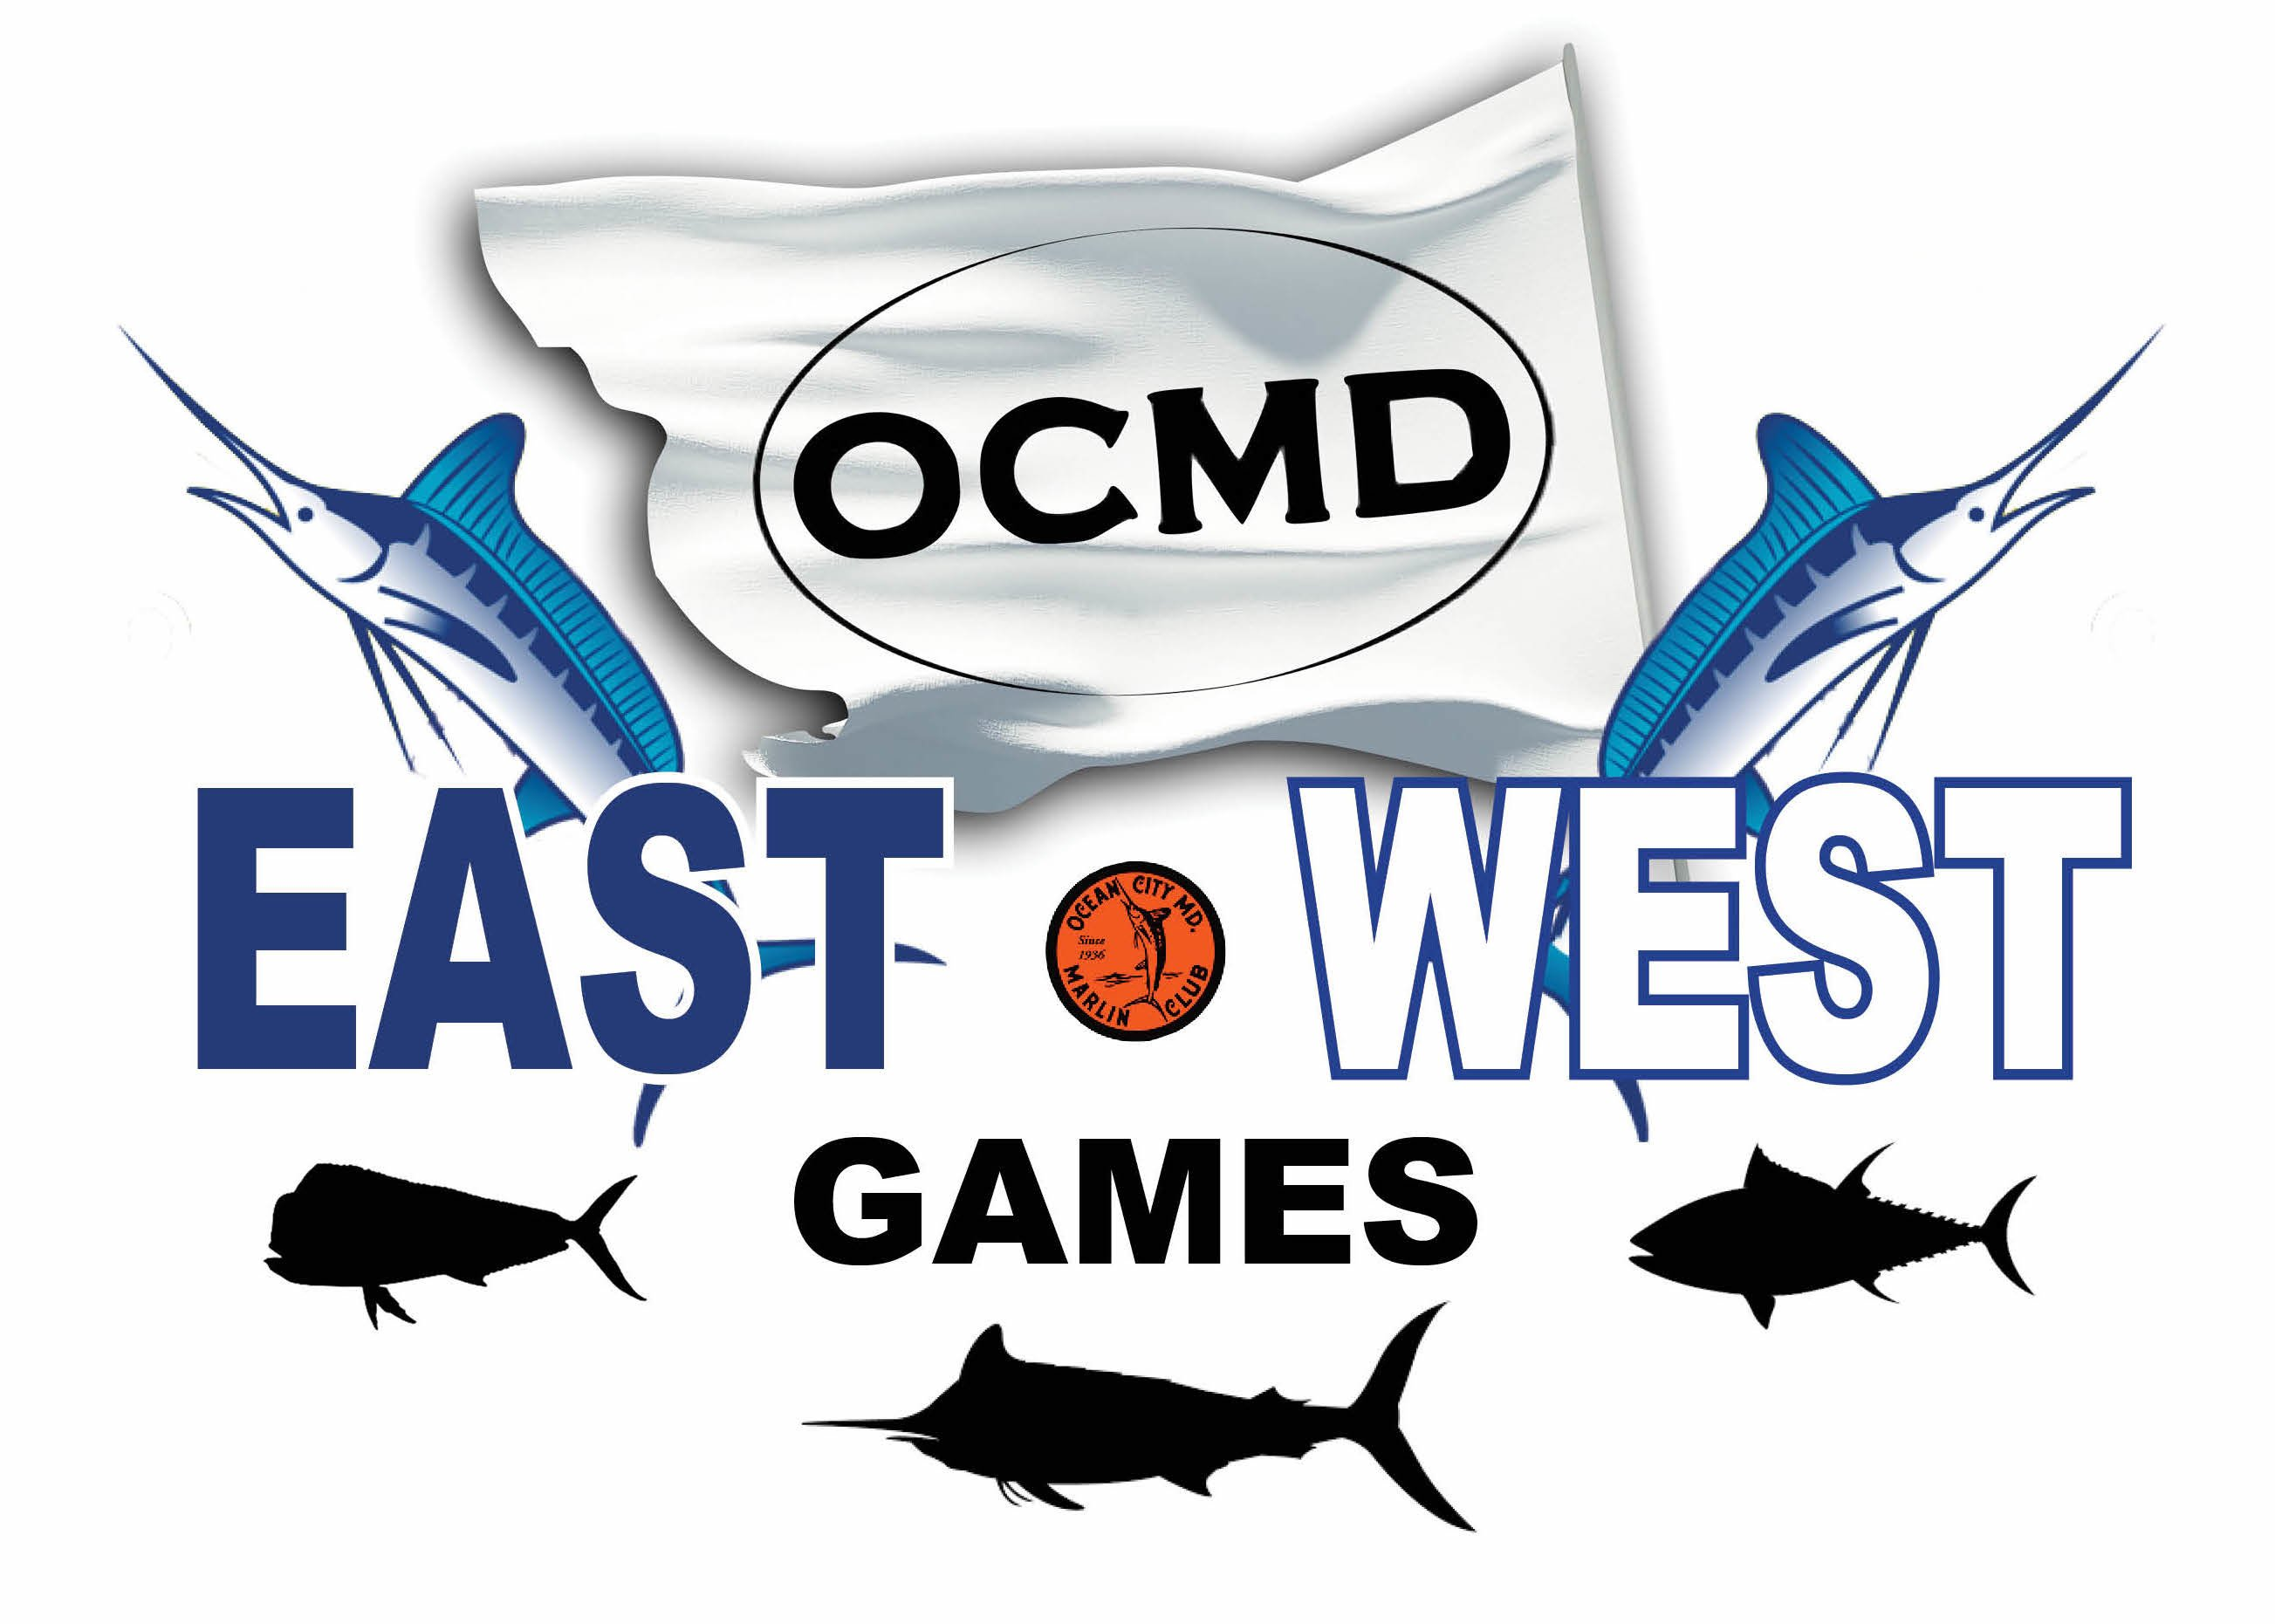 The East West Games